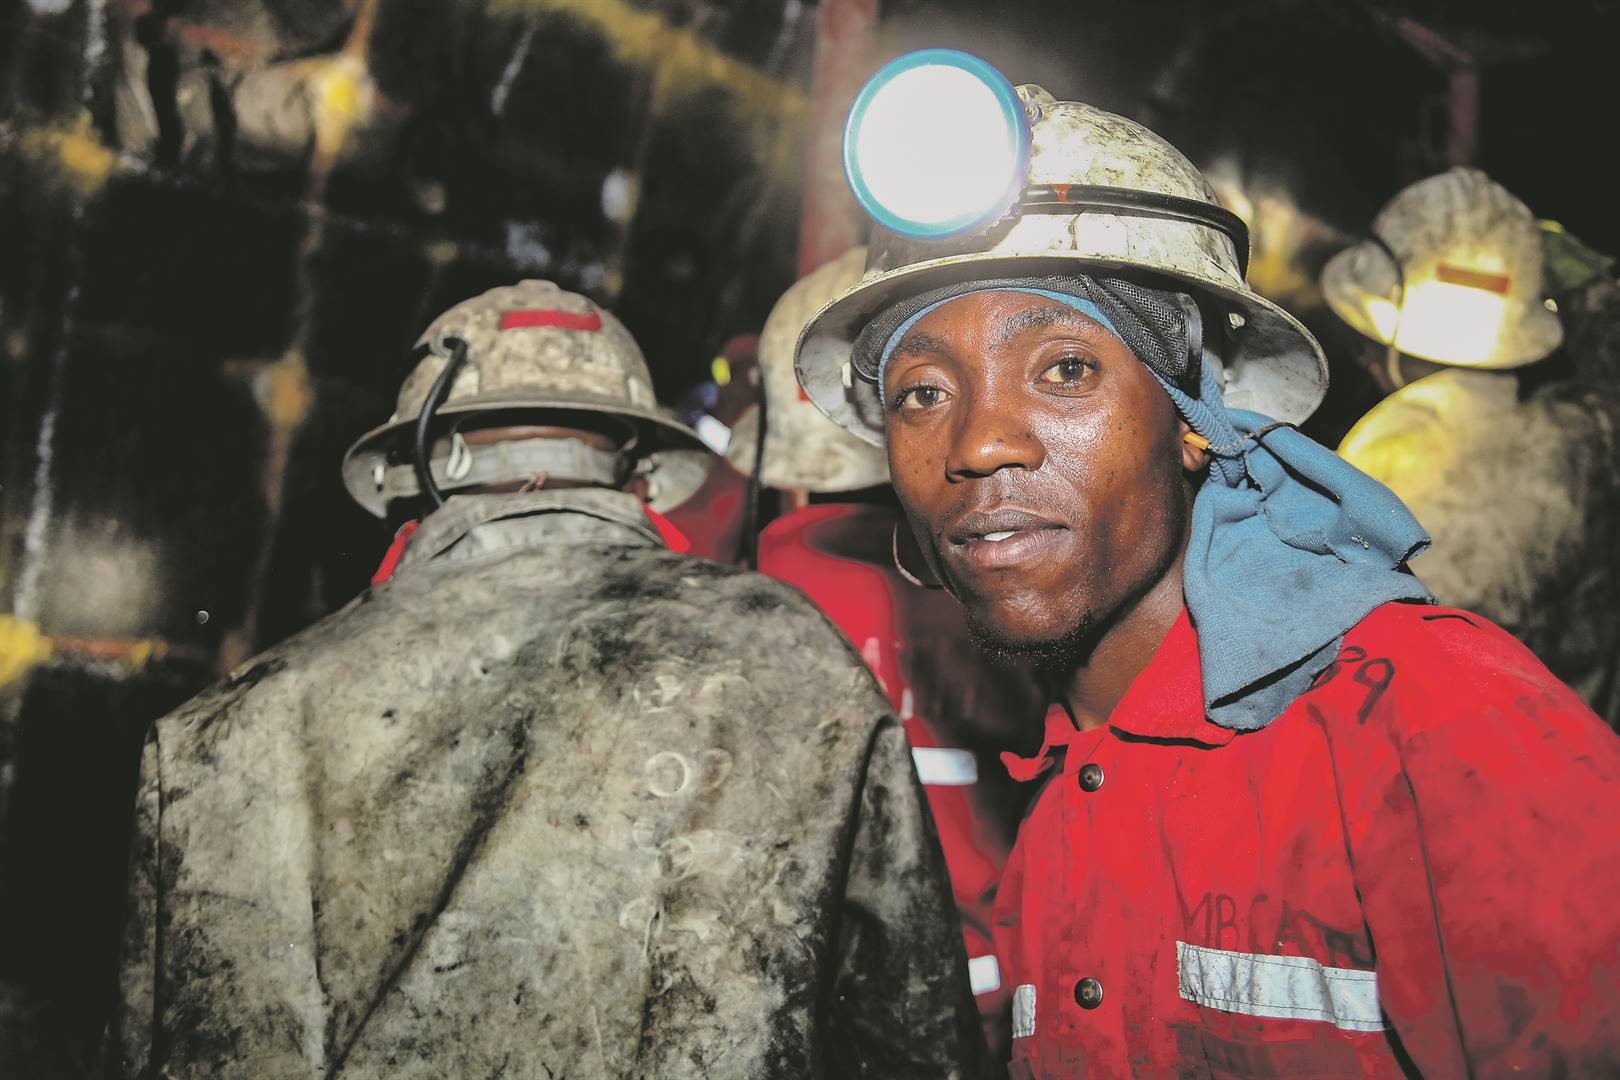 The mining industry played a leading role in introducing mass HIV treatment in the early 2000s, at a time when key government leaders opposed it.